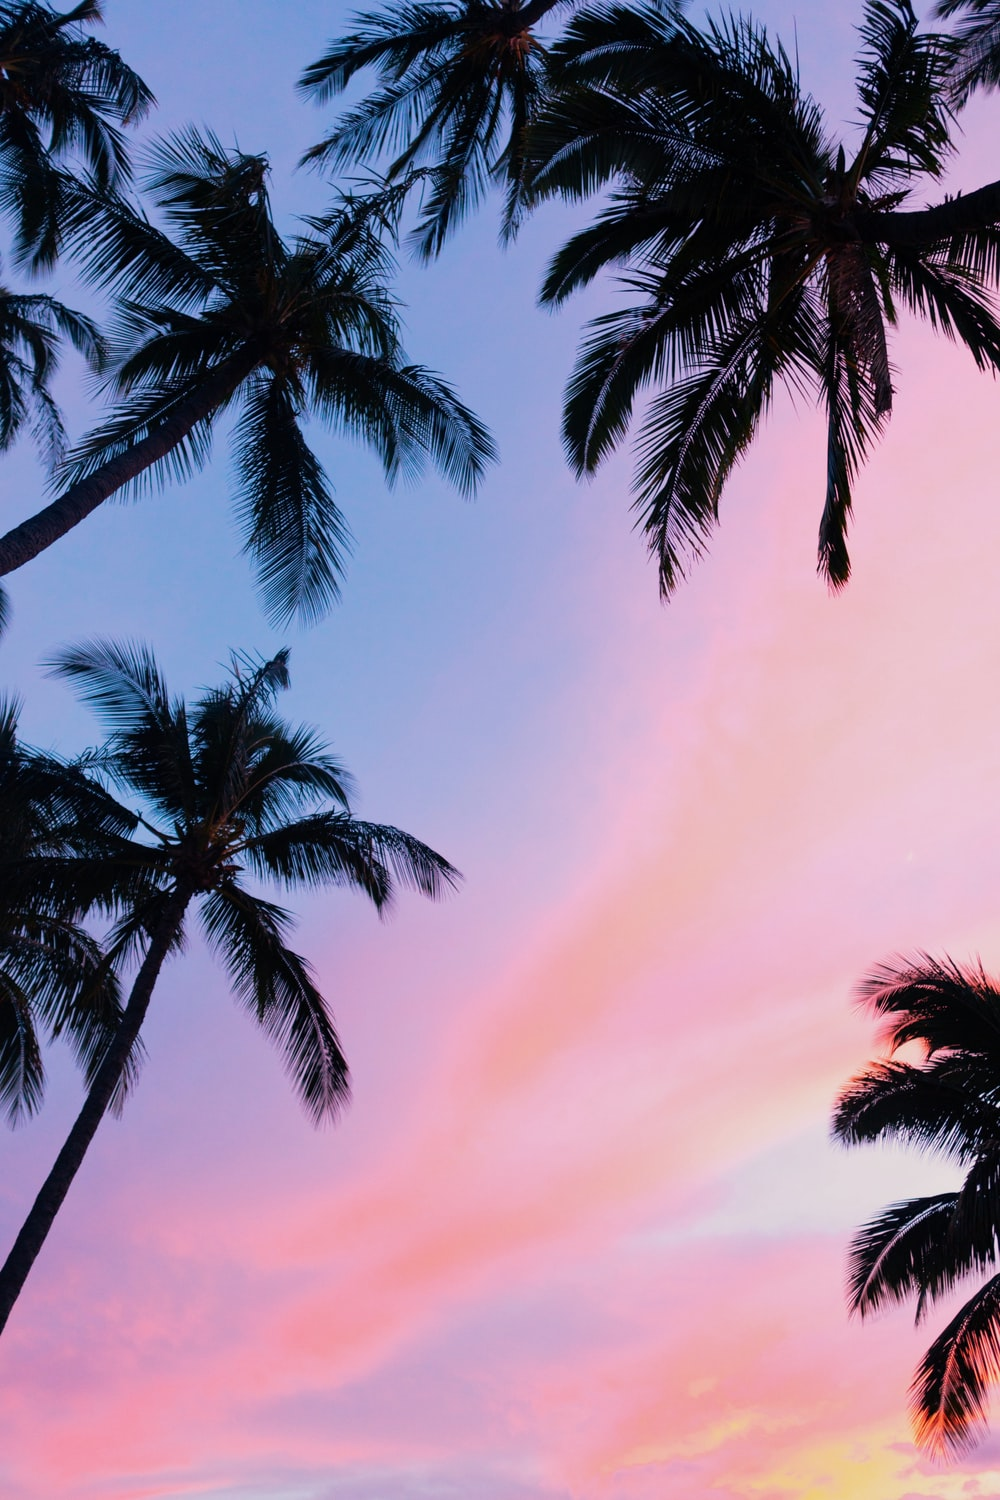 palm tree pictures hd download free images on unsplash